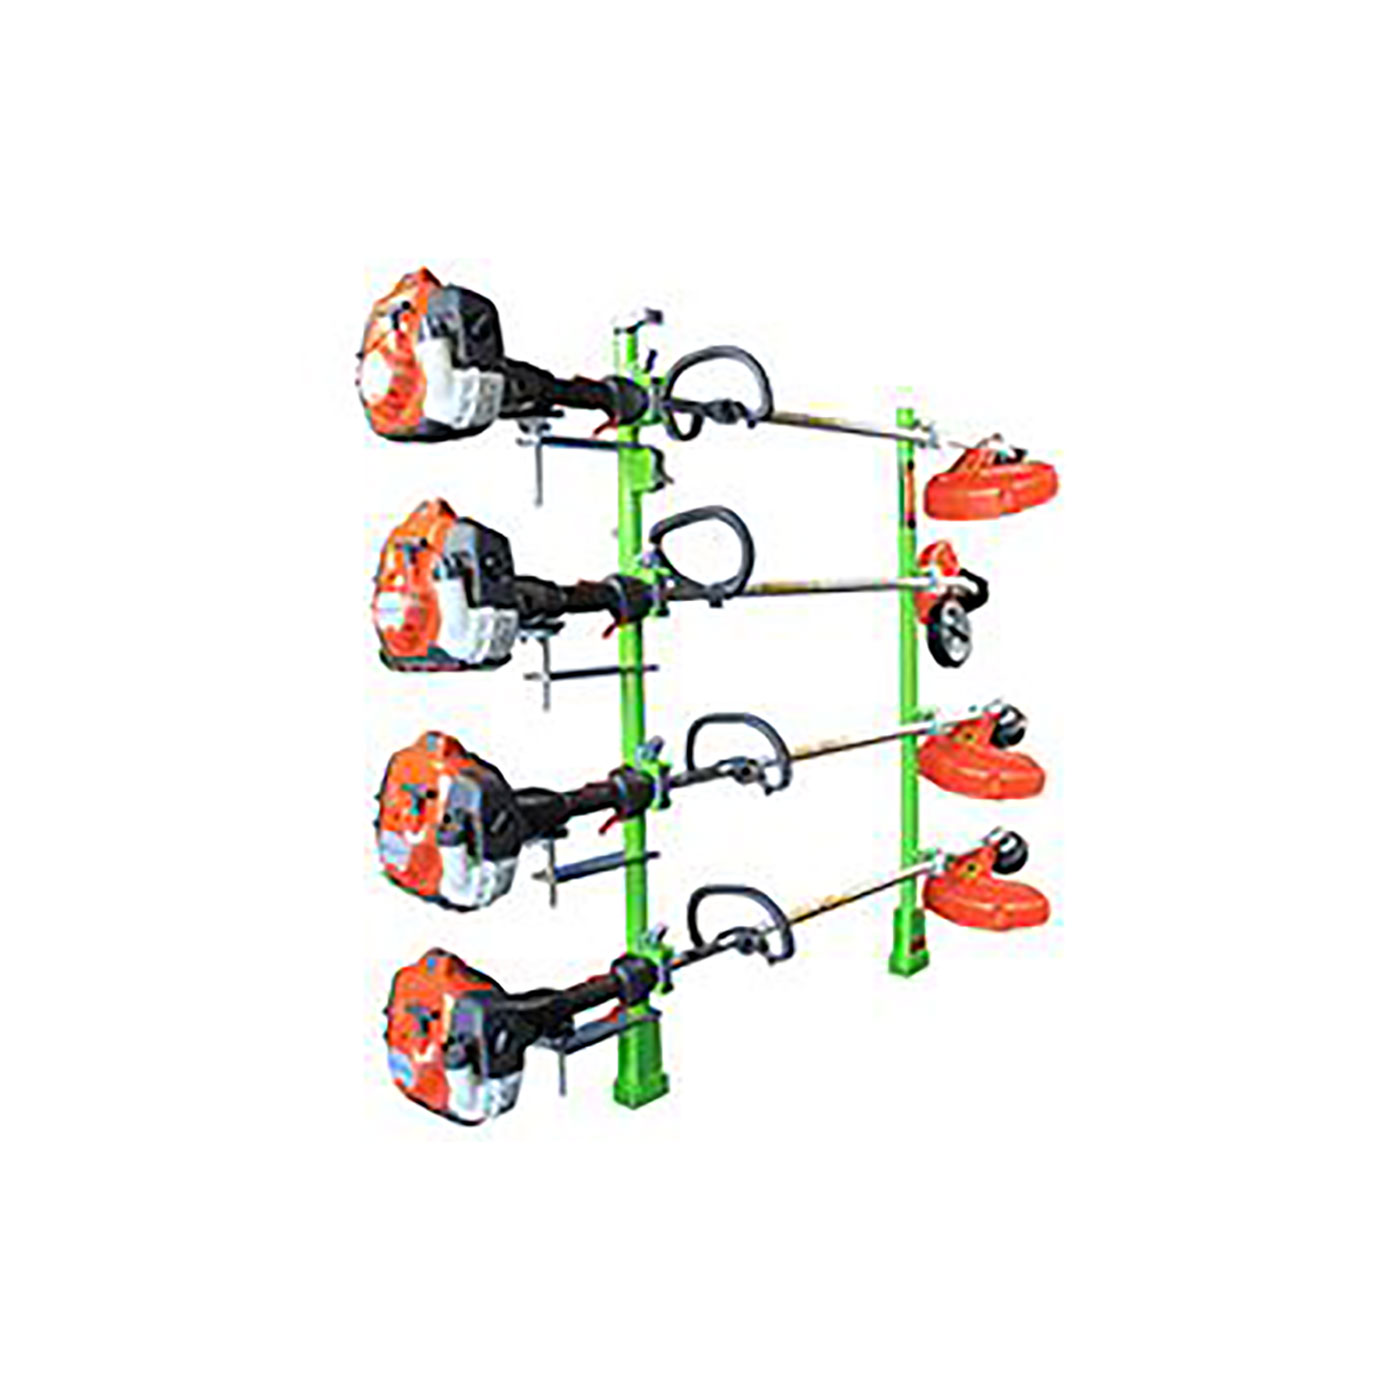 4 Position Trimmer Rack (Enclosed Trailers)